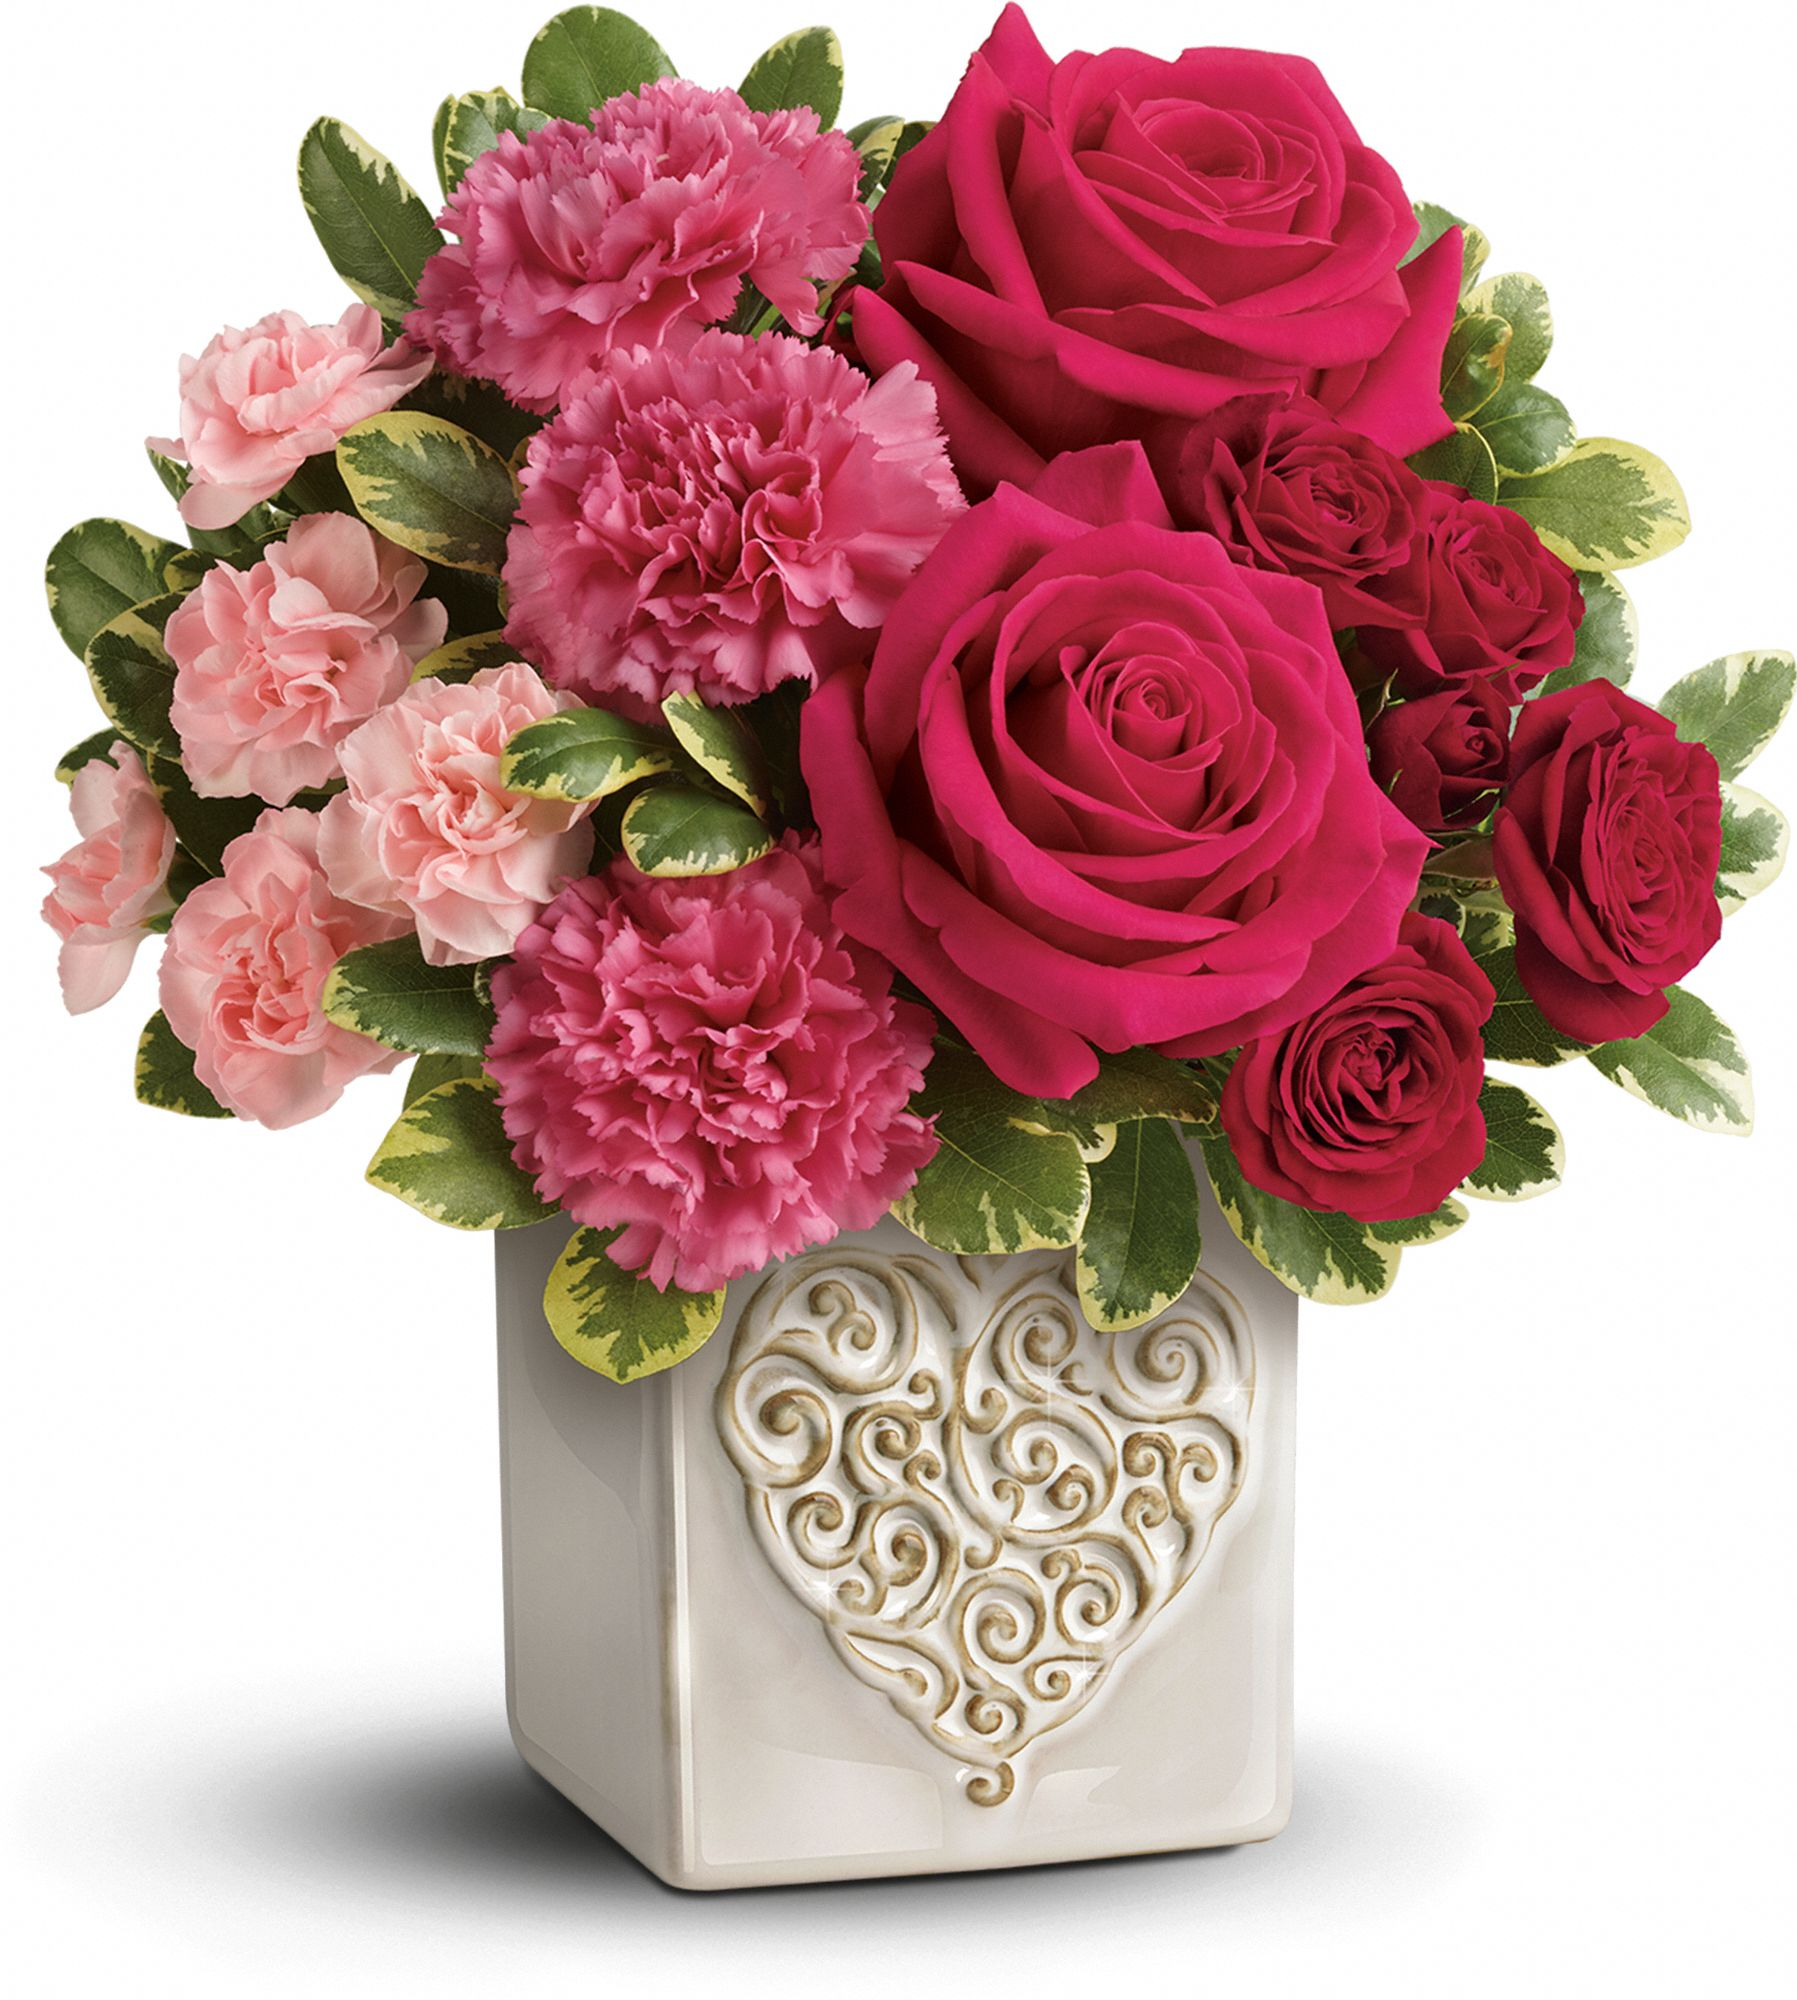 valentine's day gifts  valentine's gift ideas  teleflora, Beautiful flower